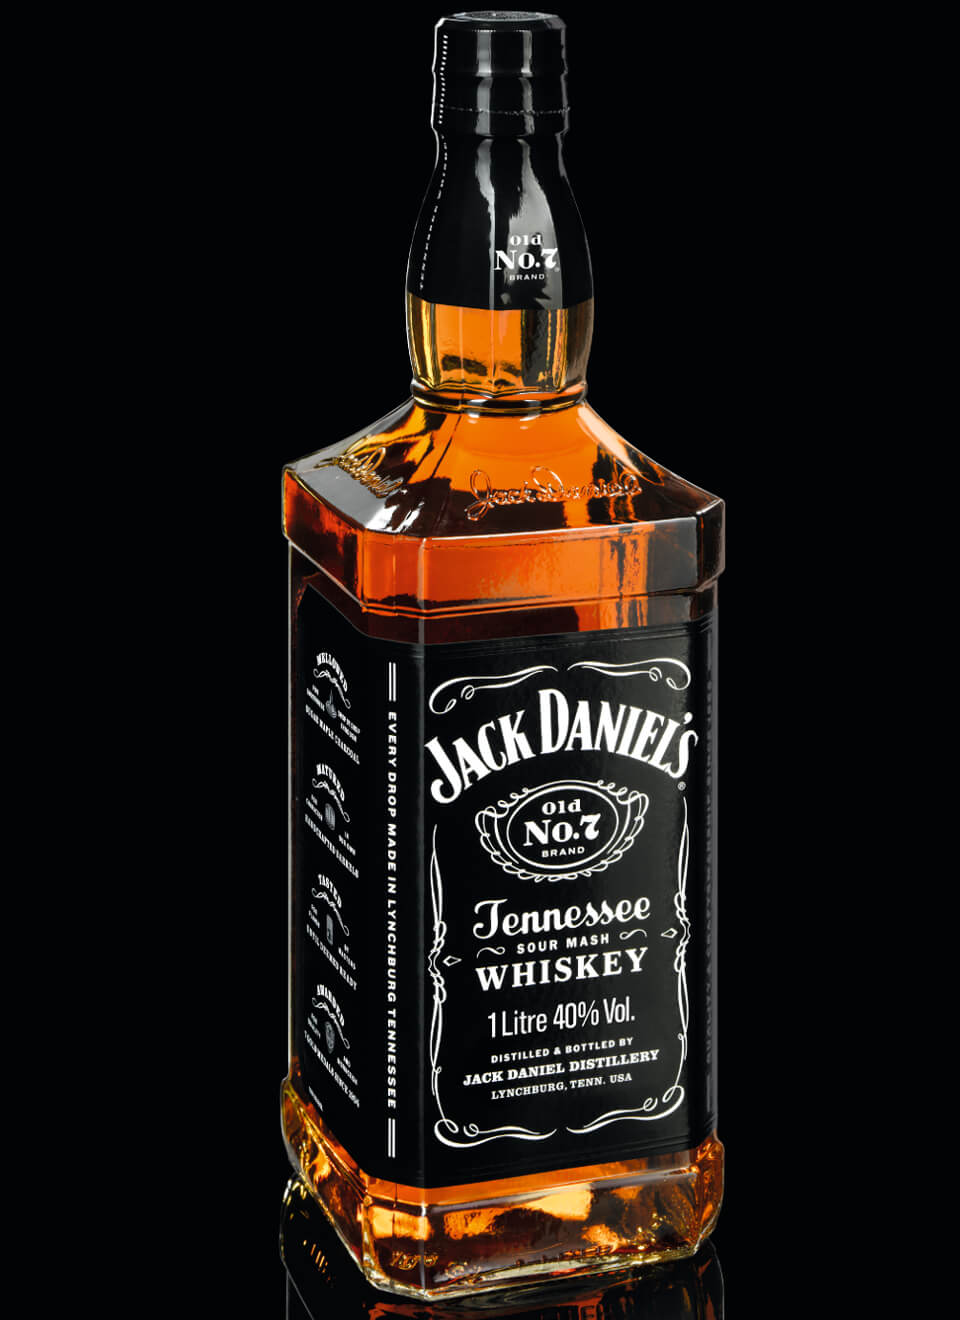 Jack Daniels Old No.7 Tennessee Whiskey 1 L